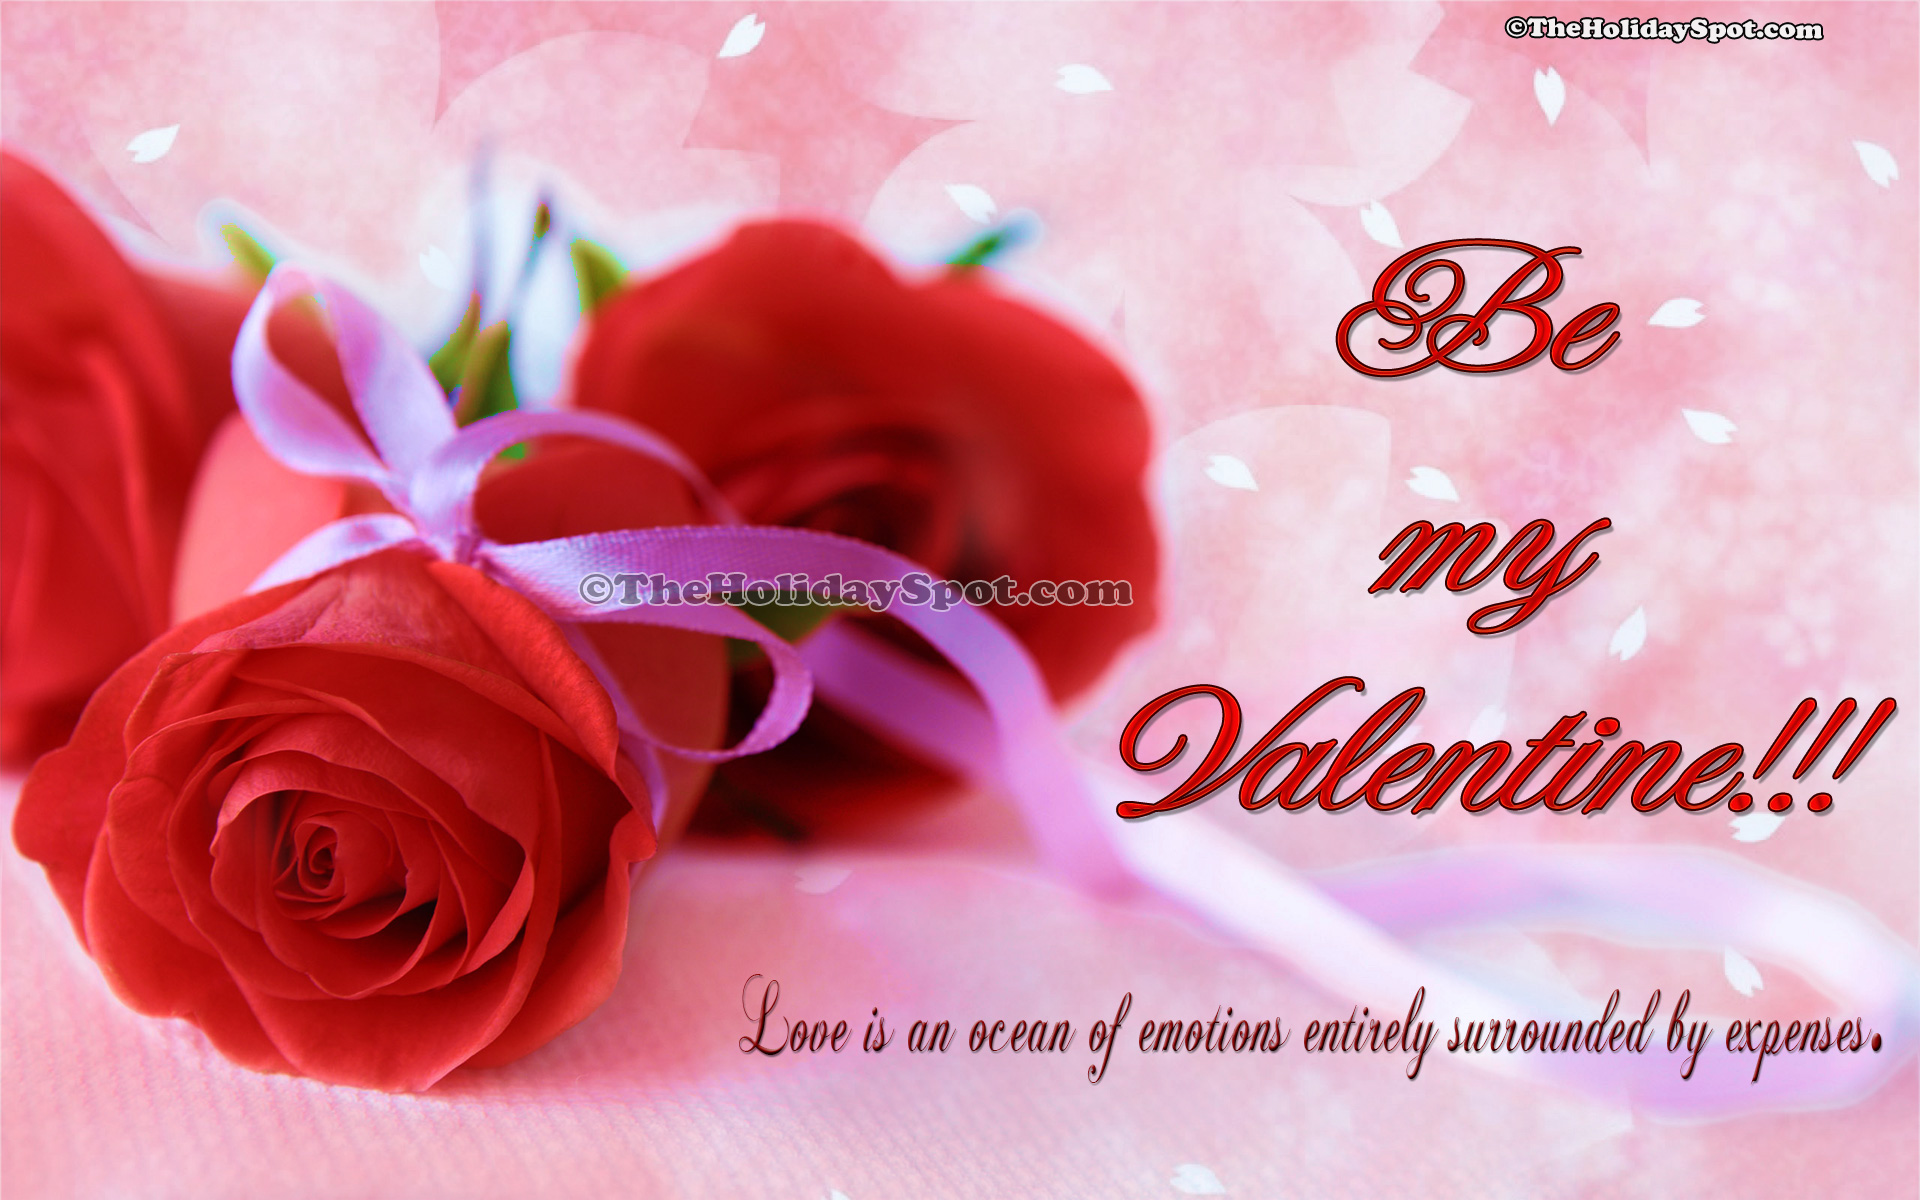 83 valentines day wallpapers